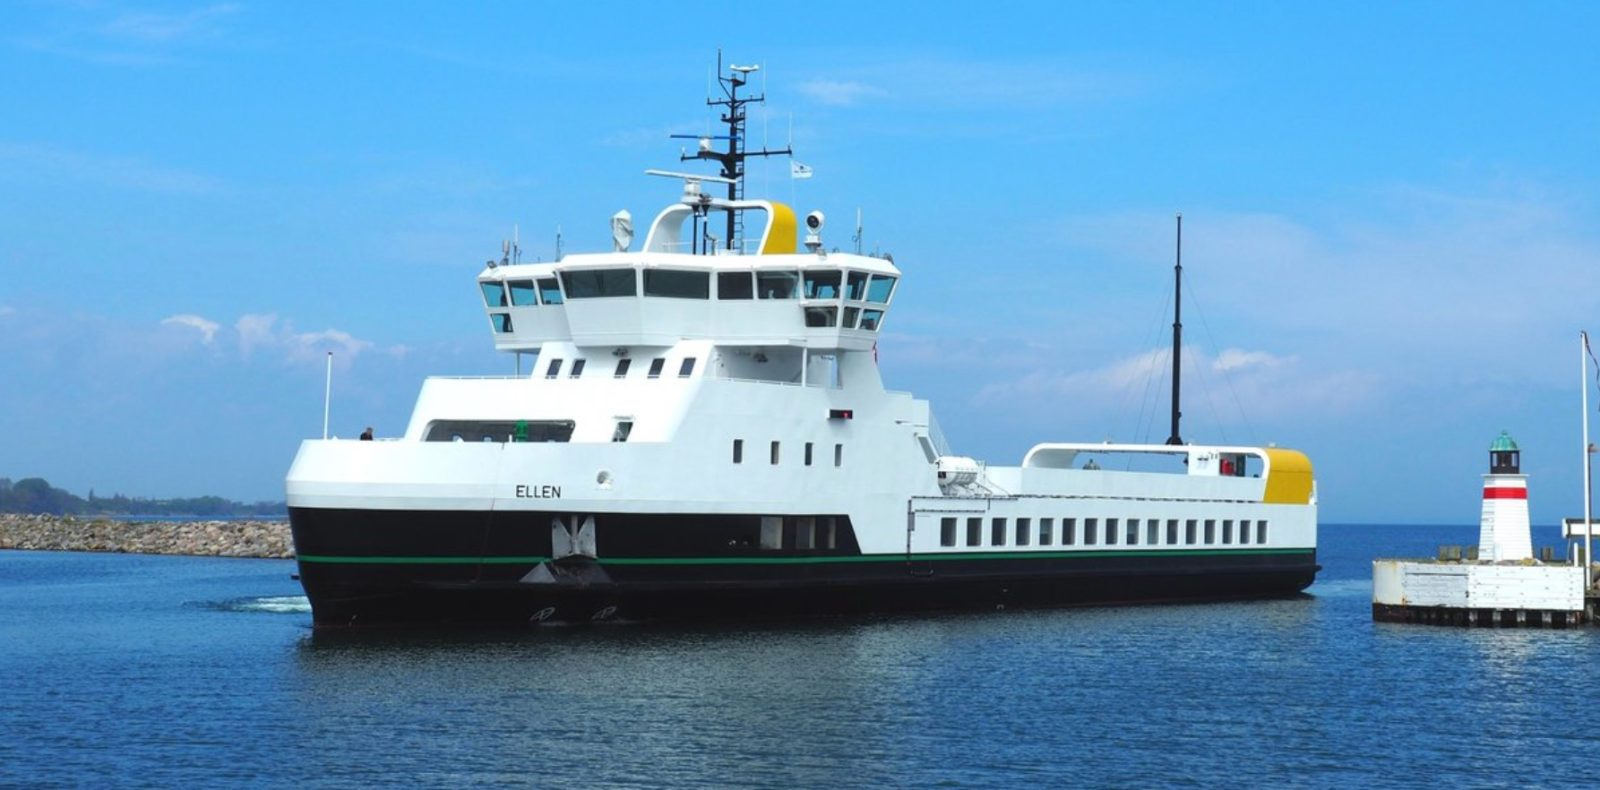 All-electric ferry with longest range in operation saves 2,000 tons of CO2 a year